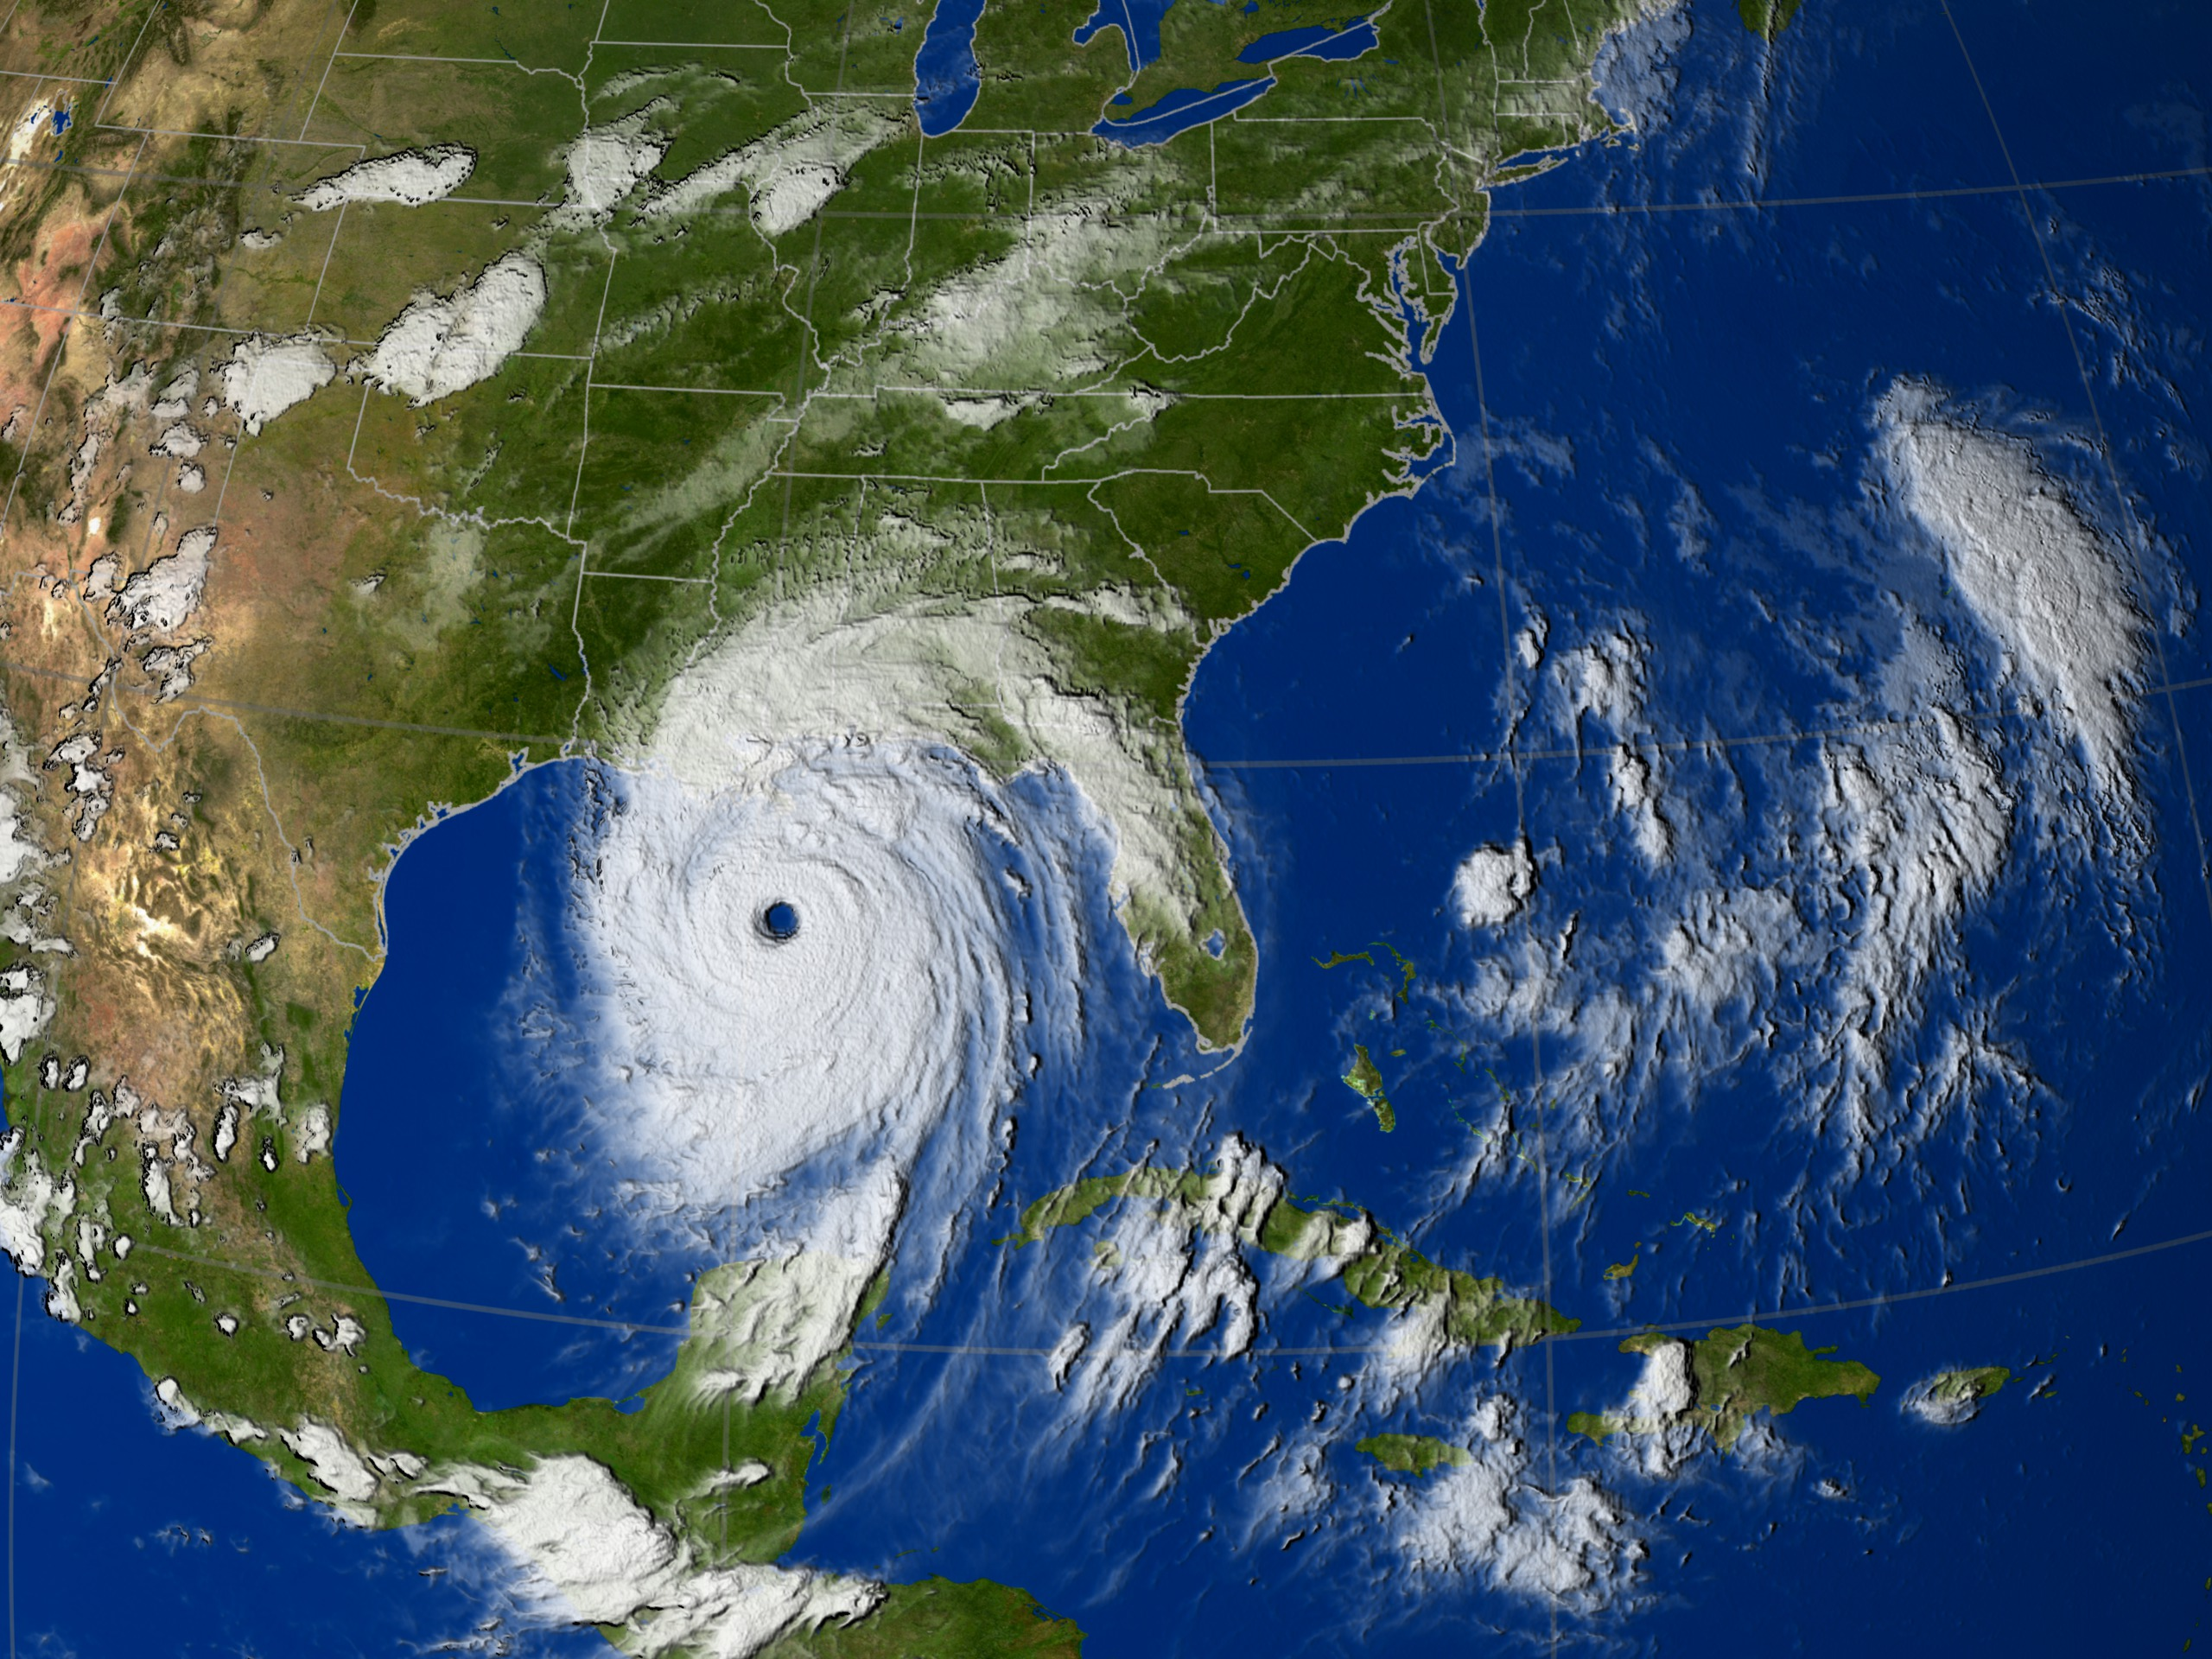 Hurricane Katrina IR clouds from GOES on 29 Aug 2005 at 00:15 GMT